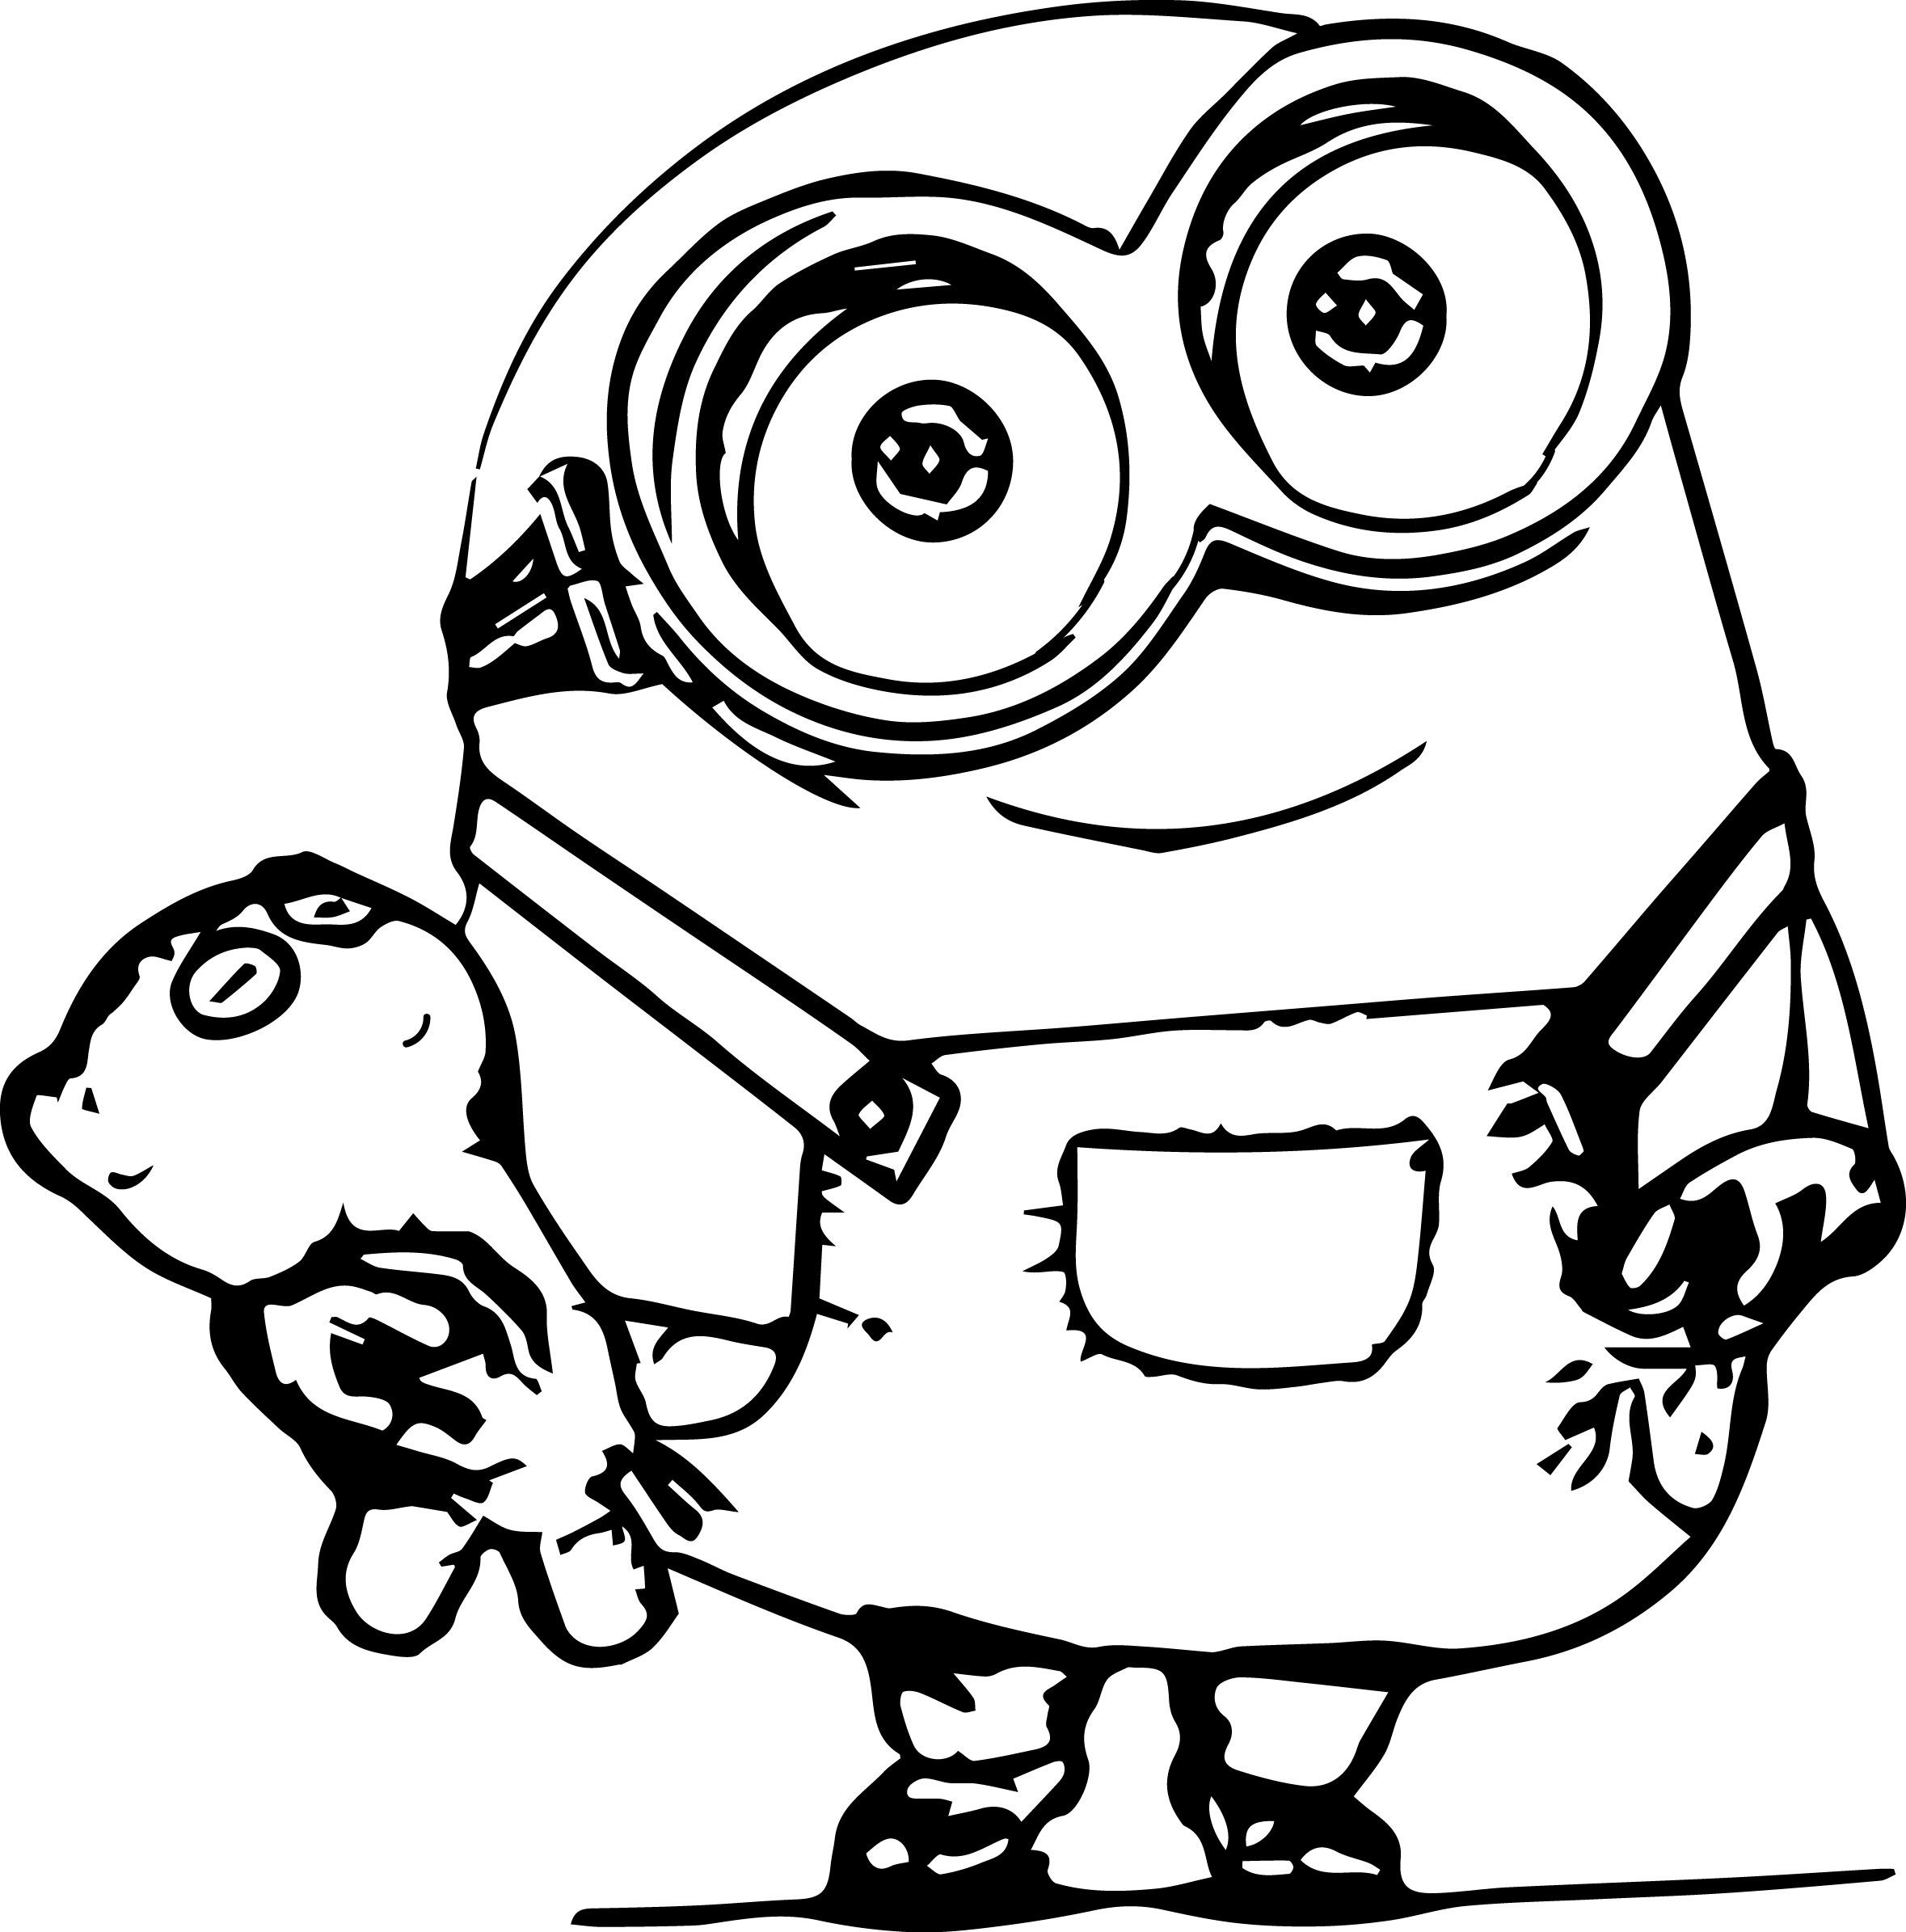 Coloring games online minion - Awesome Minions Coloring Pages